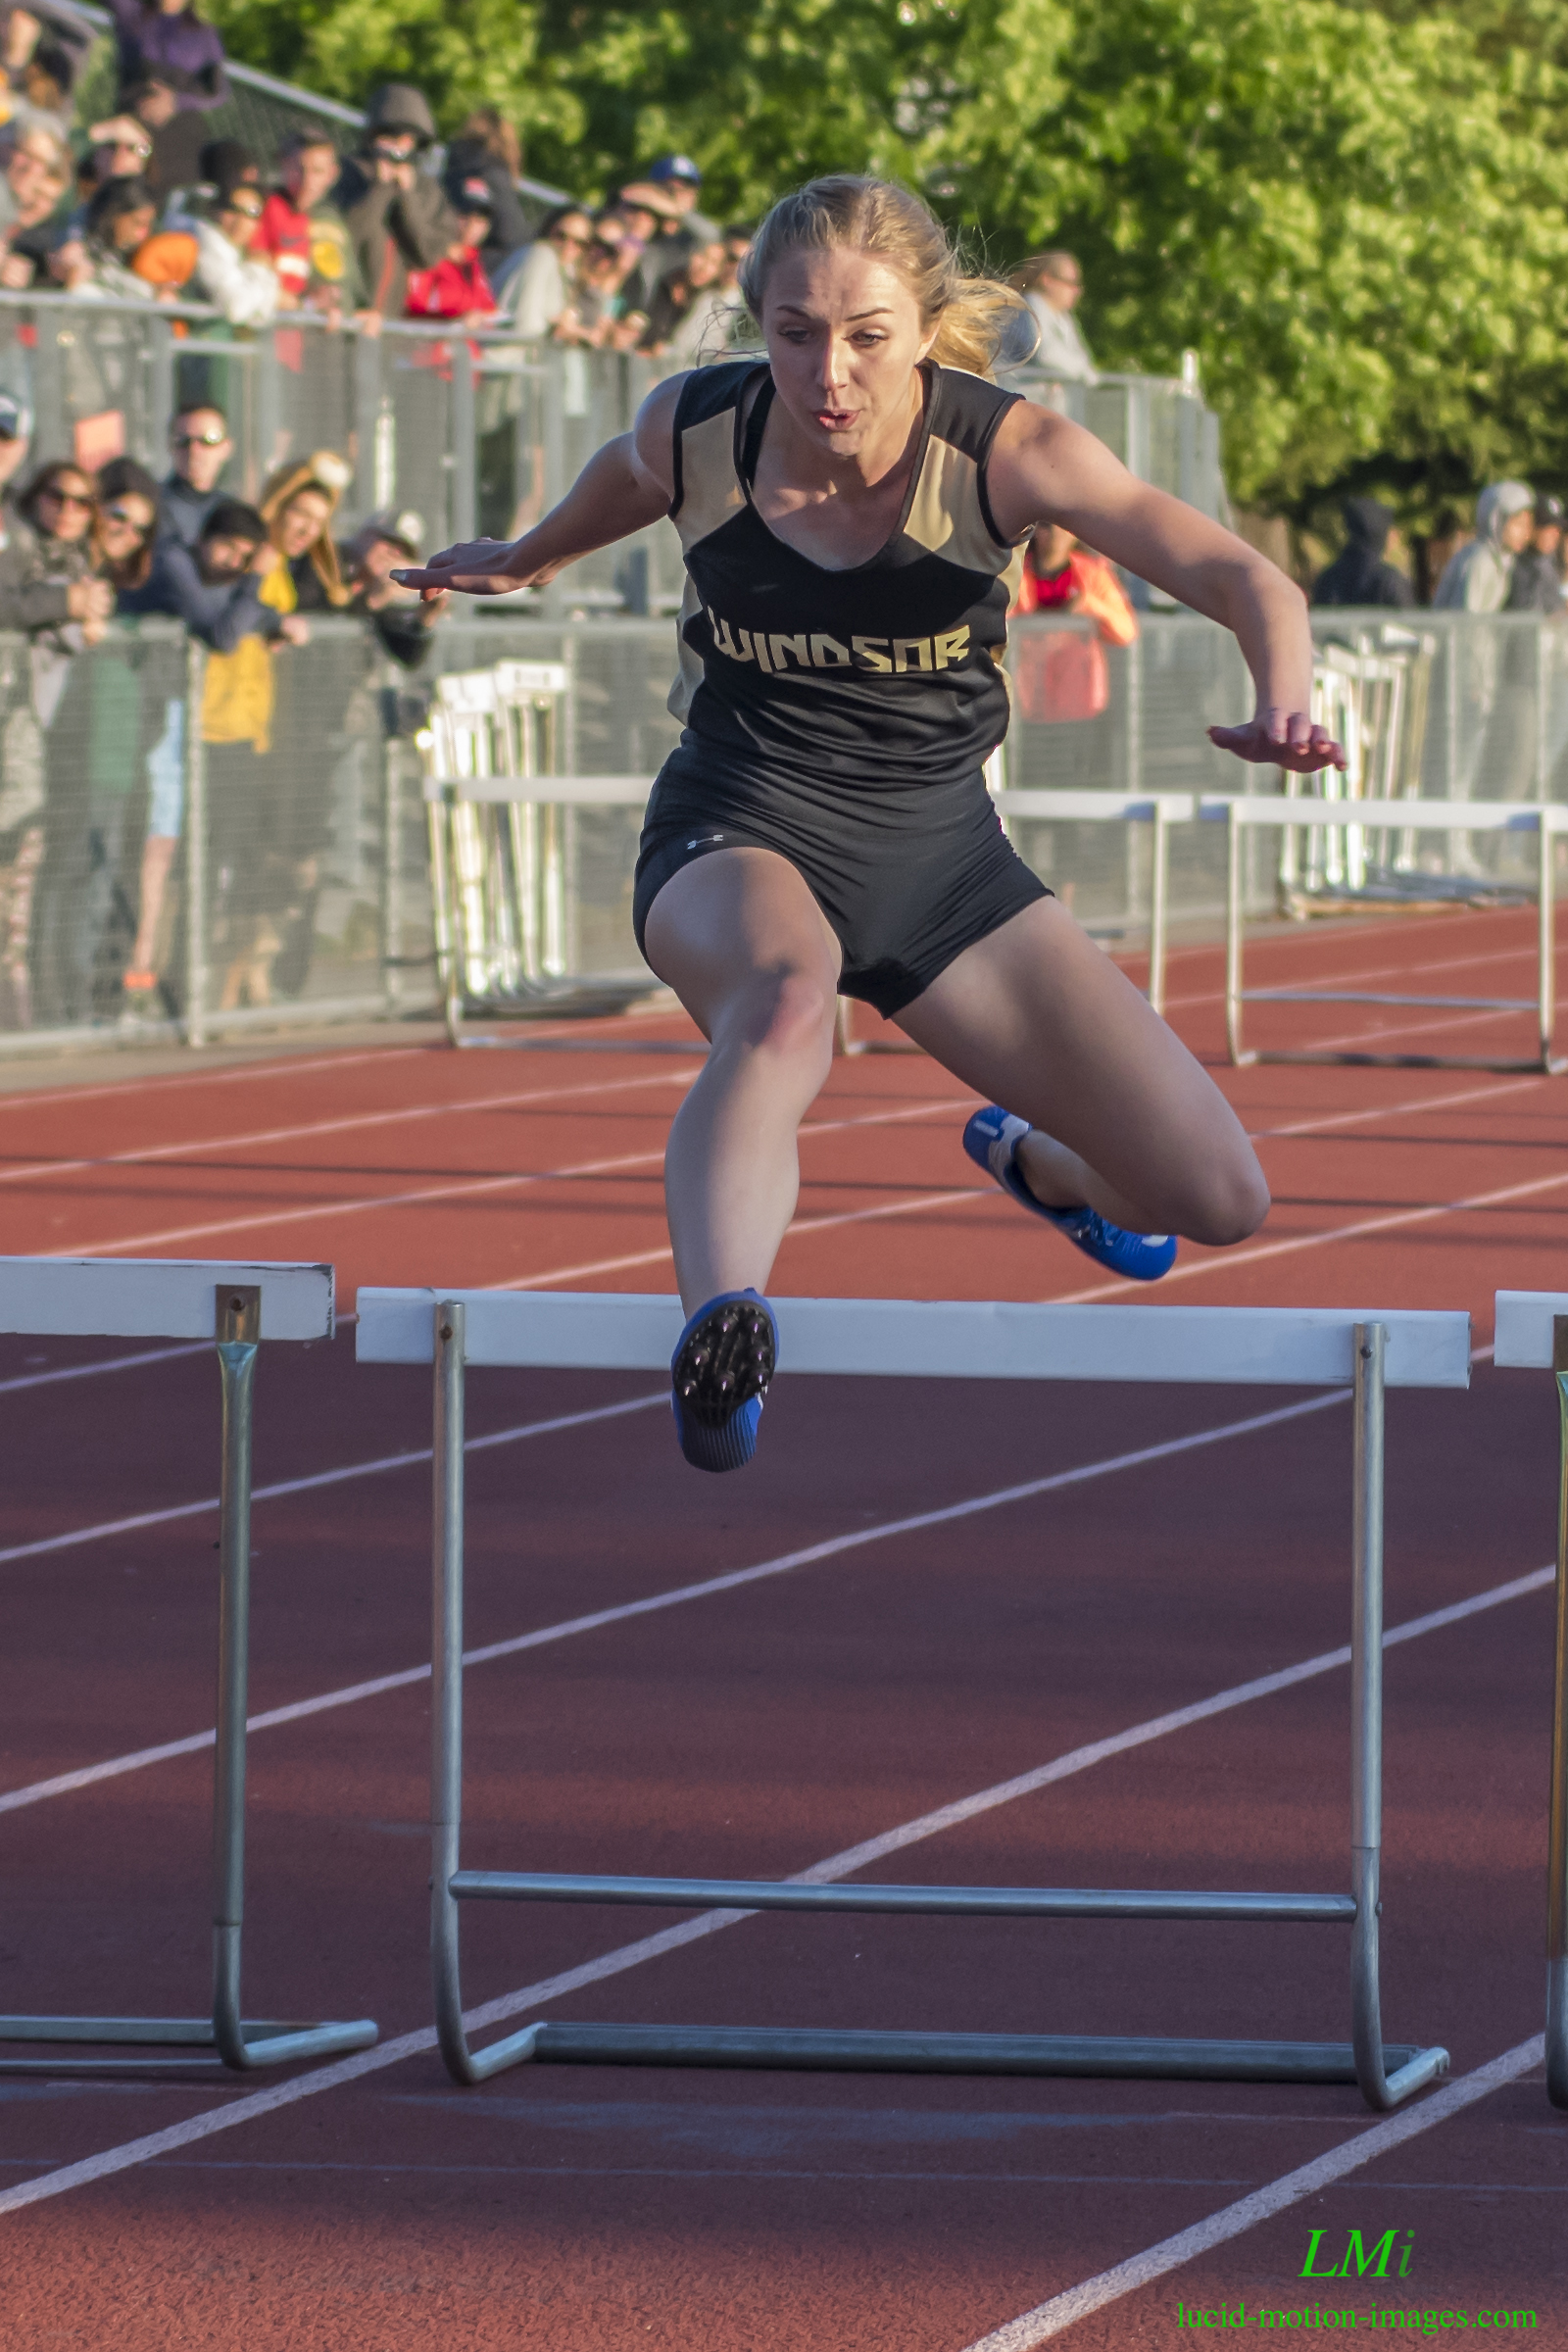 """maddie call - """"Our family would like to thank you for your time and devotion to the kids of track and field. Your photos are amazing and will be treasured at our house. Thanks for the memories captured.""""Lisa CallMaddy Call's Mother"""